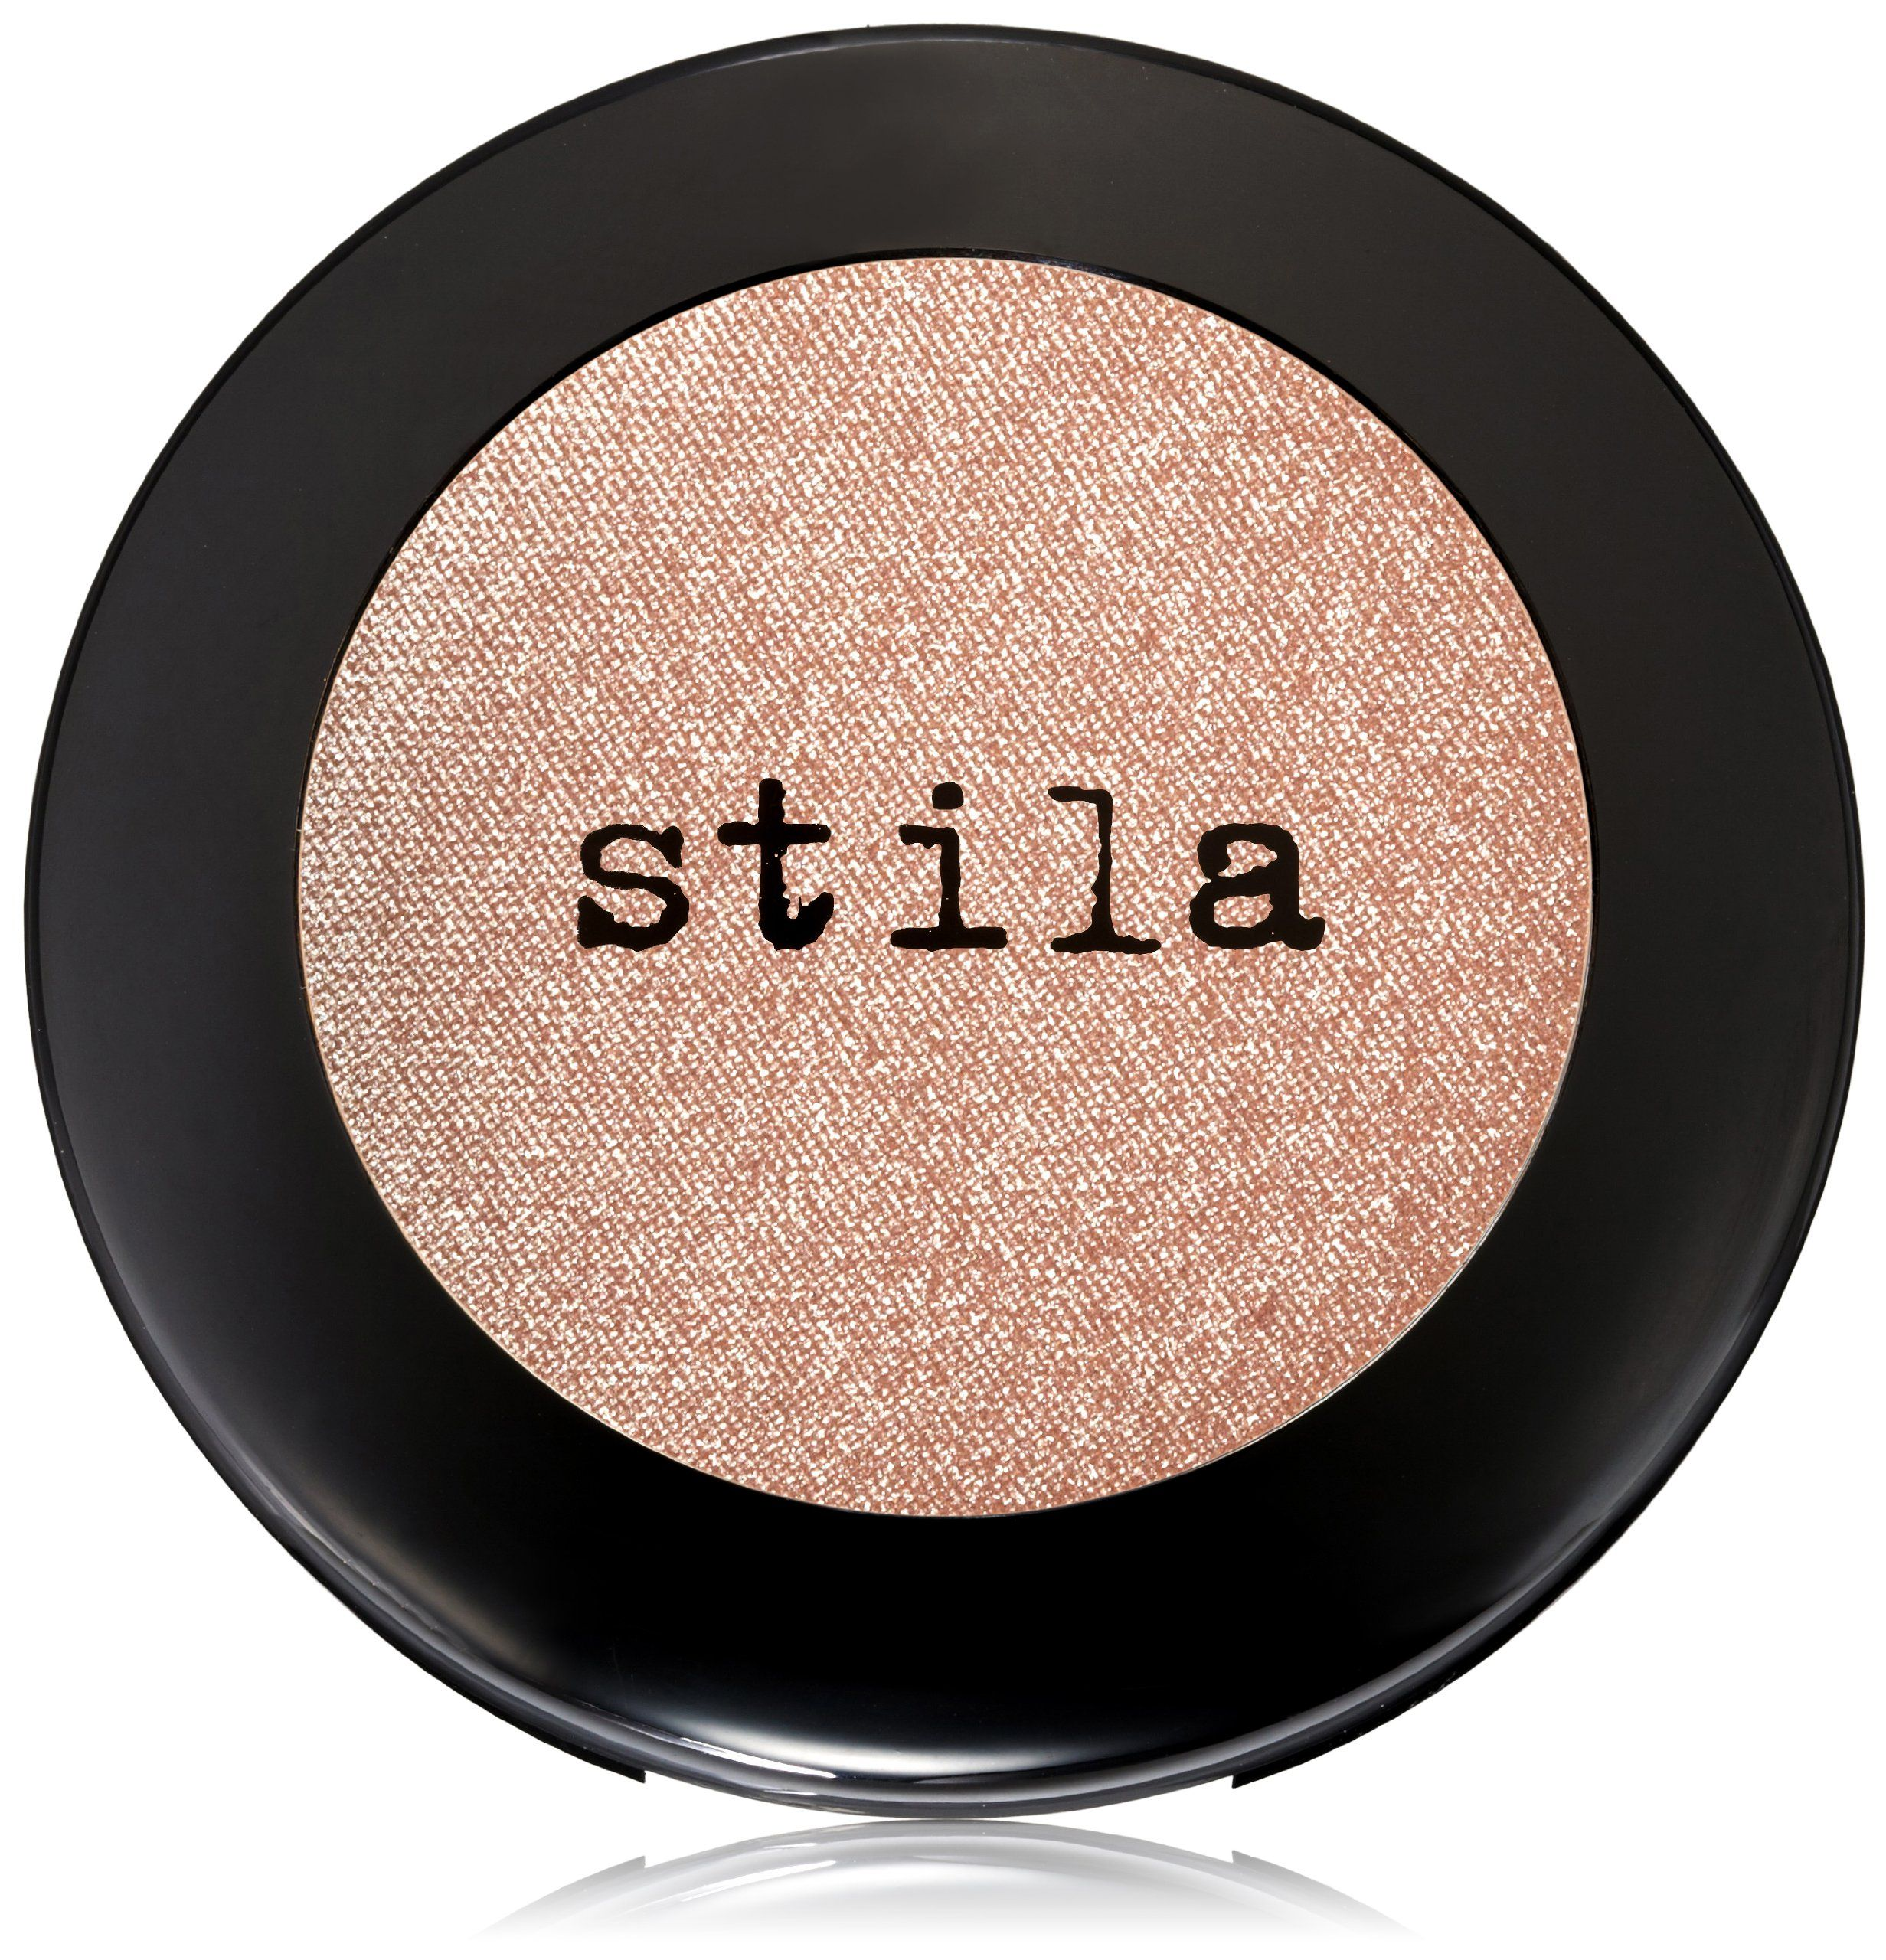 Stila Eye Shadow Compact Kitten Continue To The Product At The Image Link This Is An Affiliate Link Hashtag1 Eyeshadow Eyeshadow Makeup Shadow